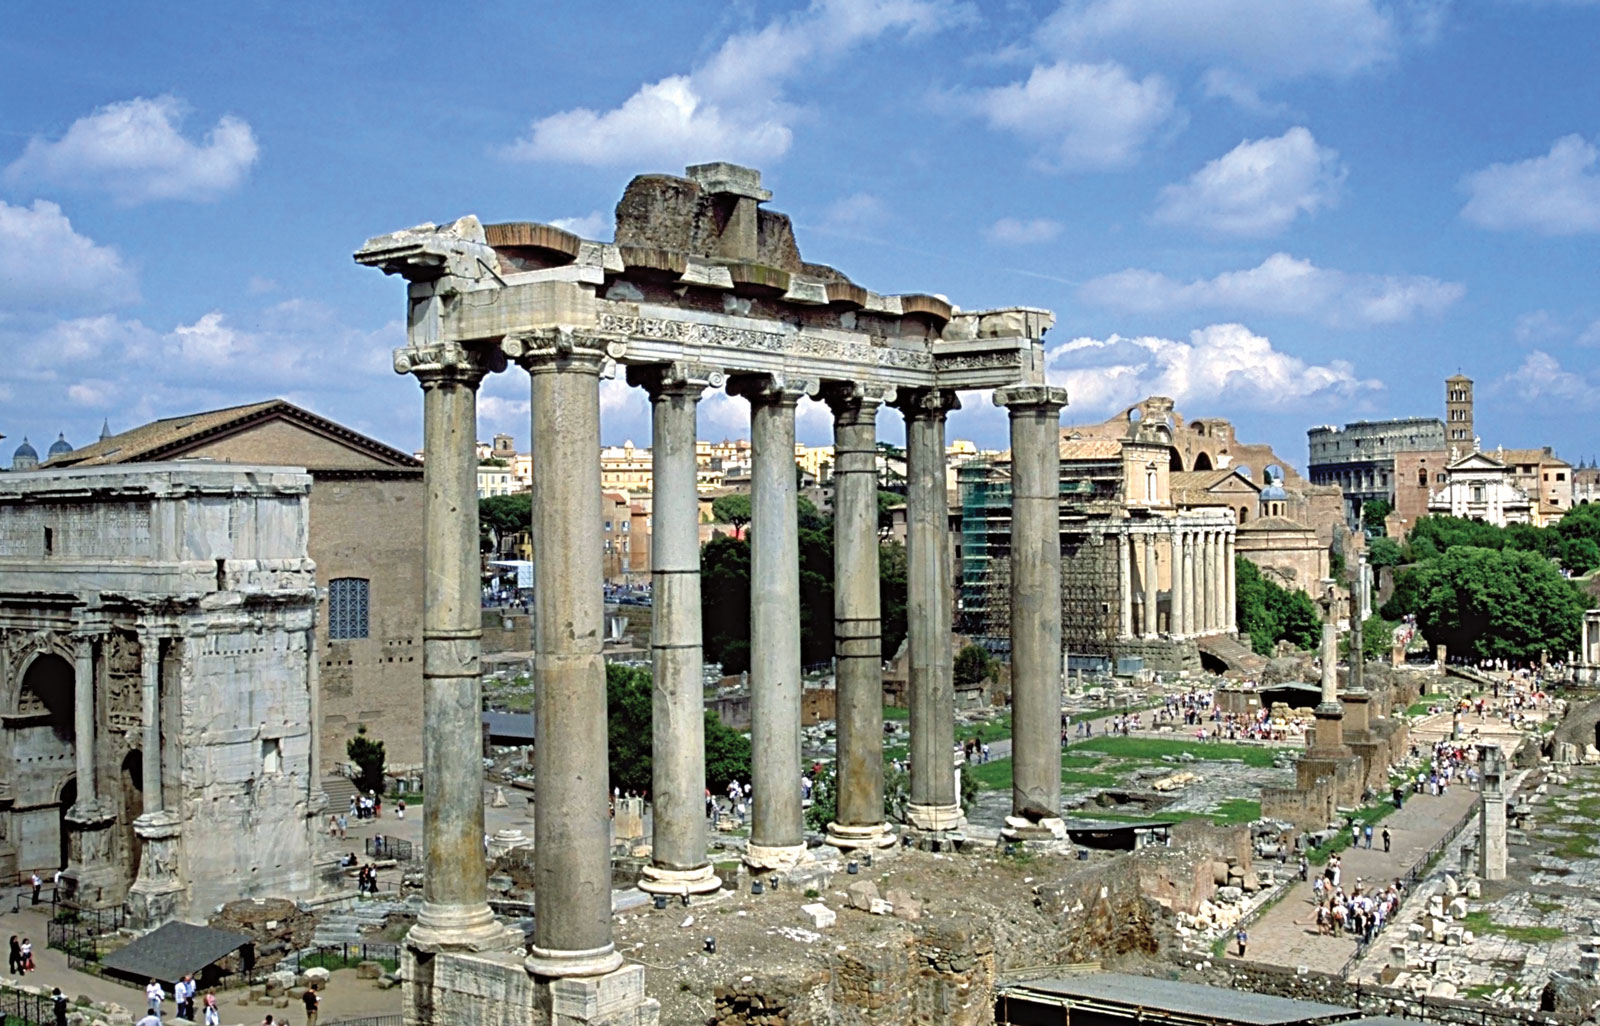 The Ancient Forum of Rome